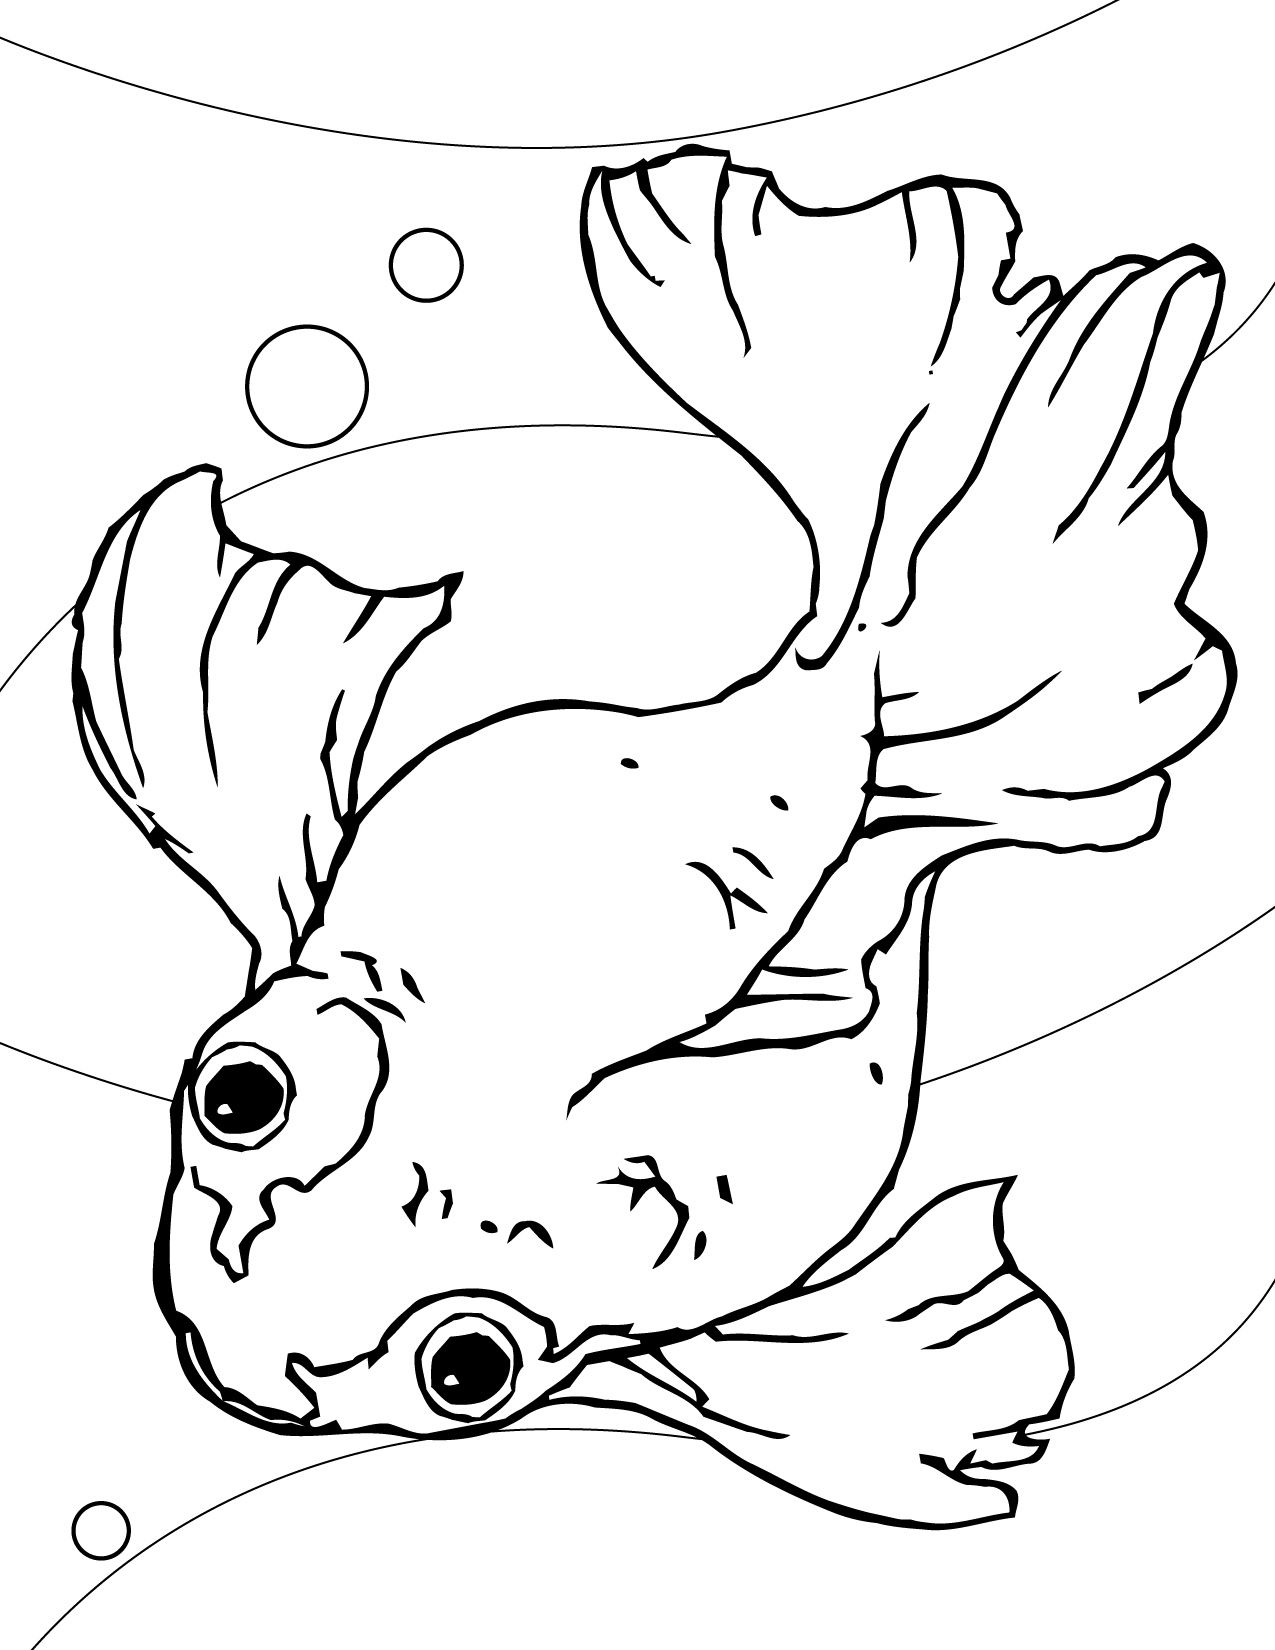 Free Coloring Pages Of Fish Pattern